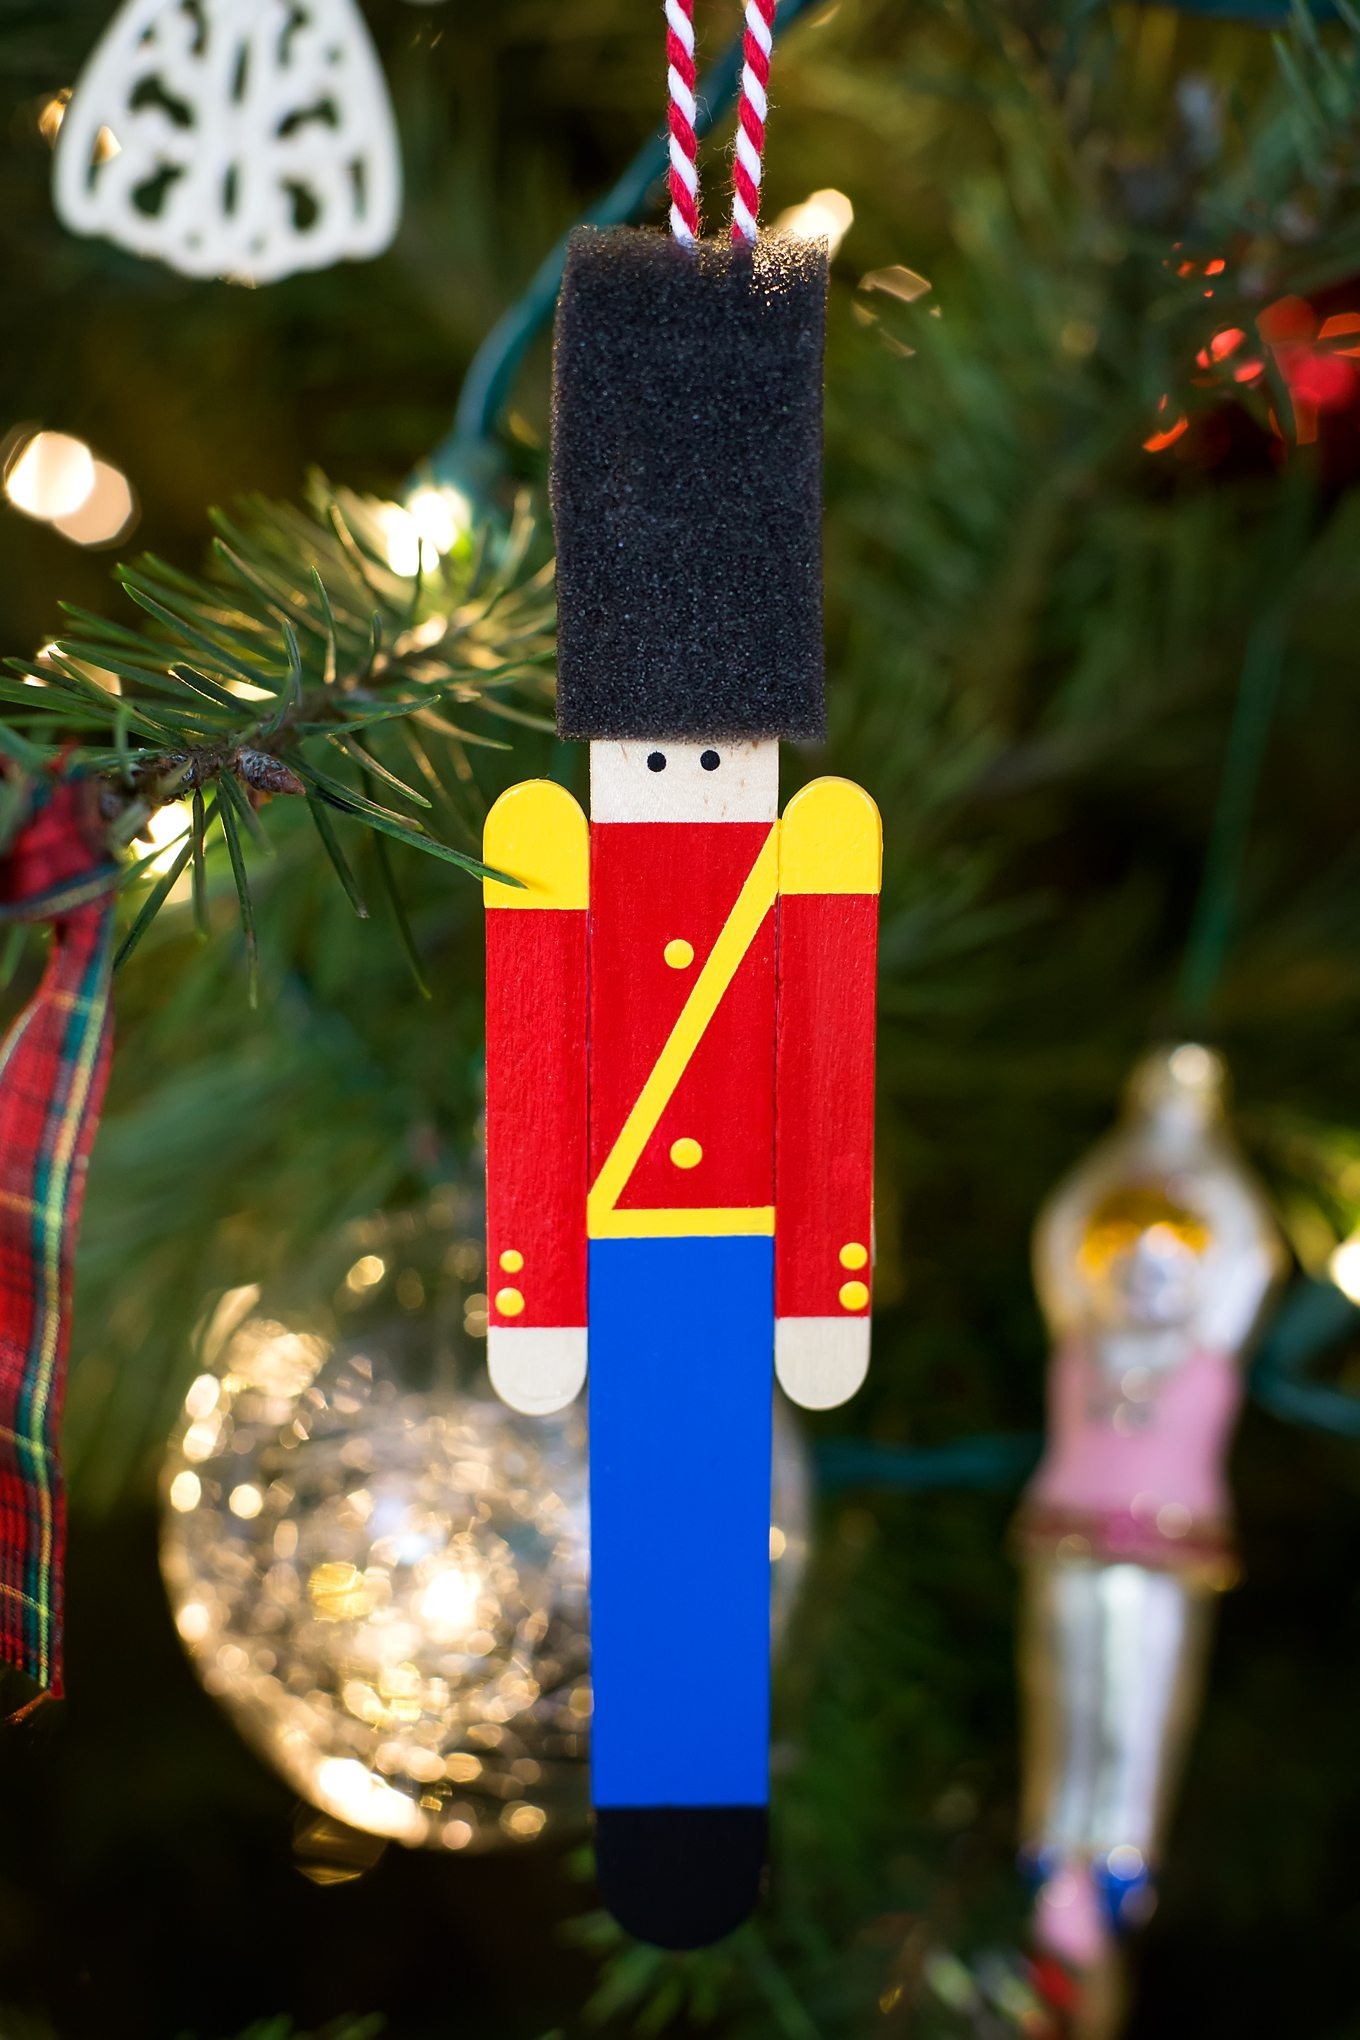 wooden soldiers wallpaper for iphone - Christmas Decorations Wooden Soldiers